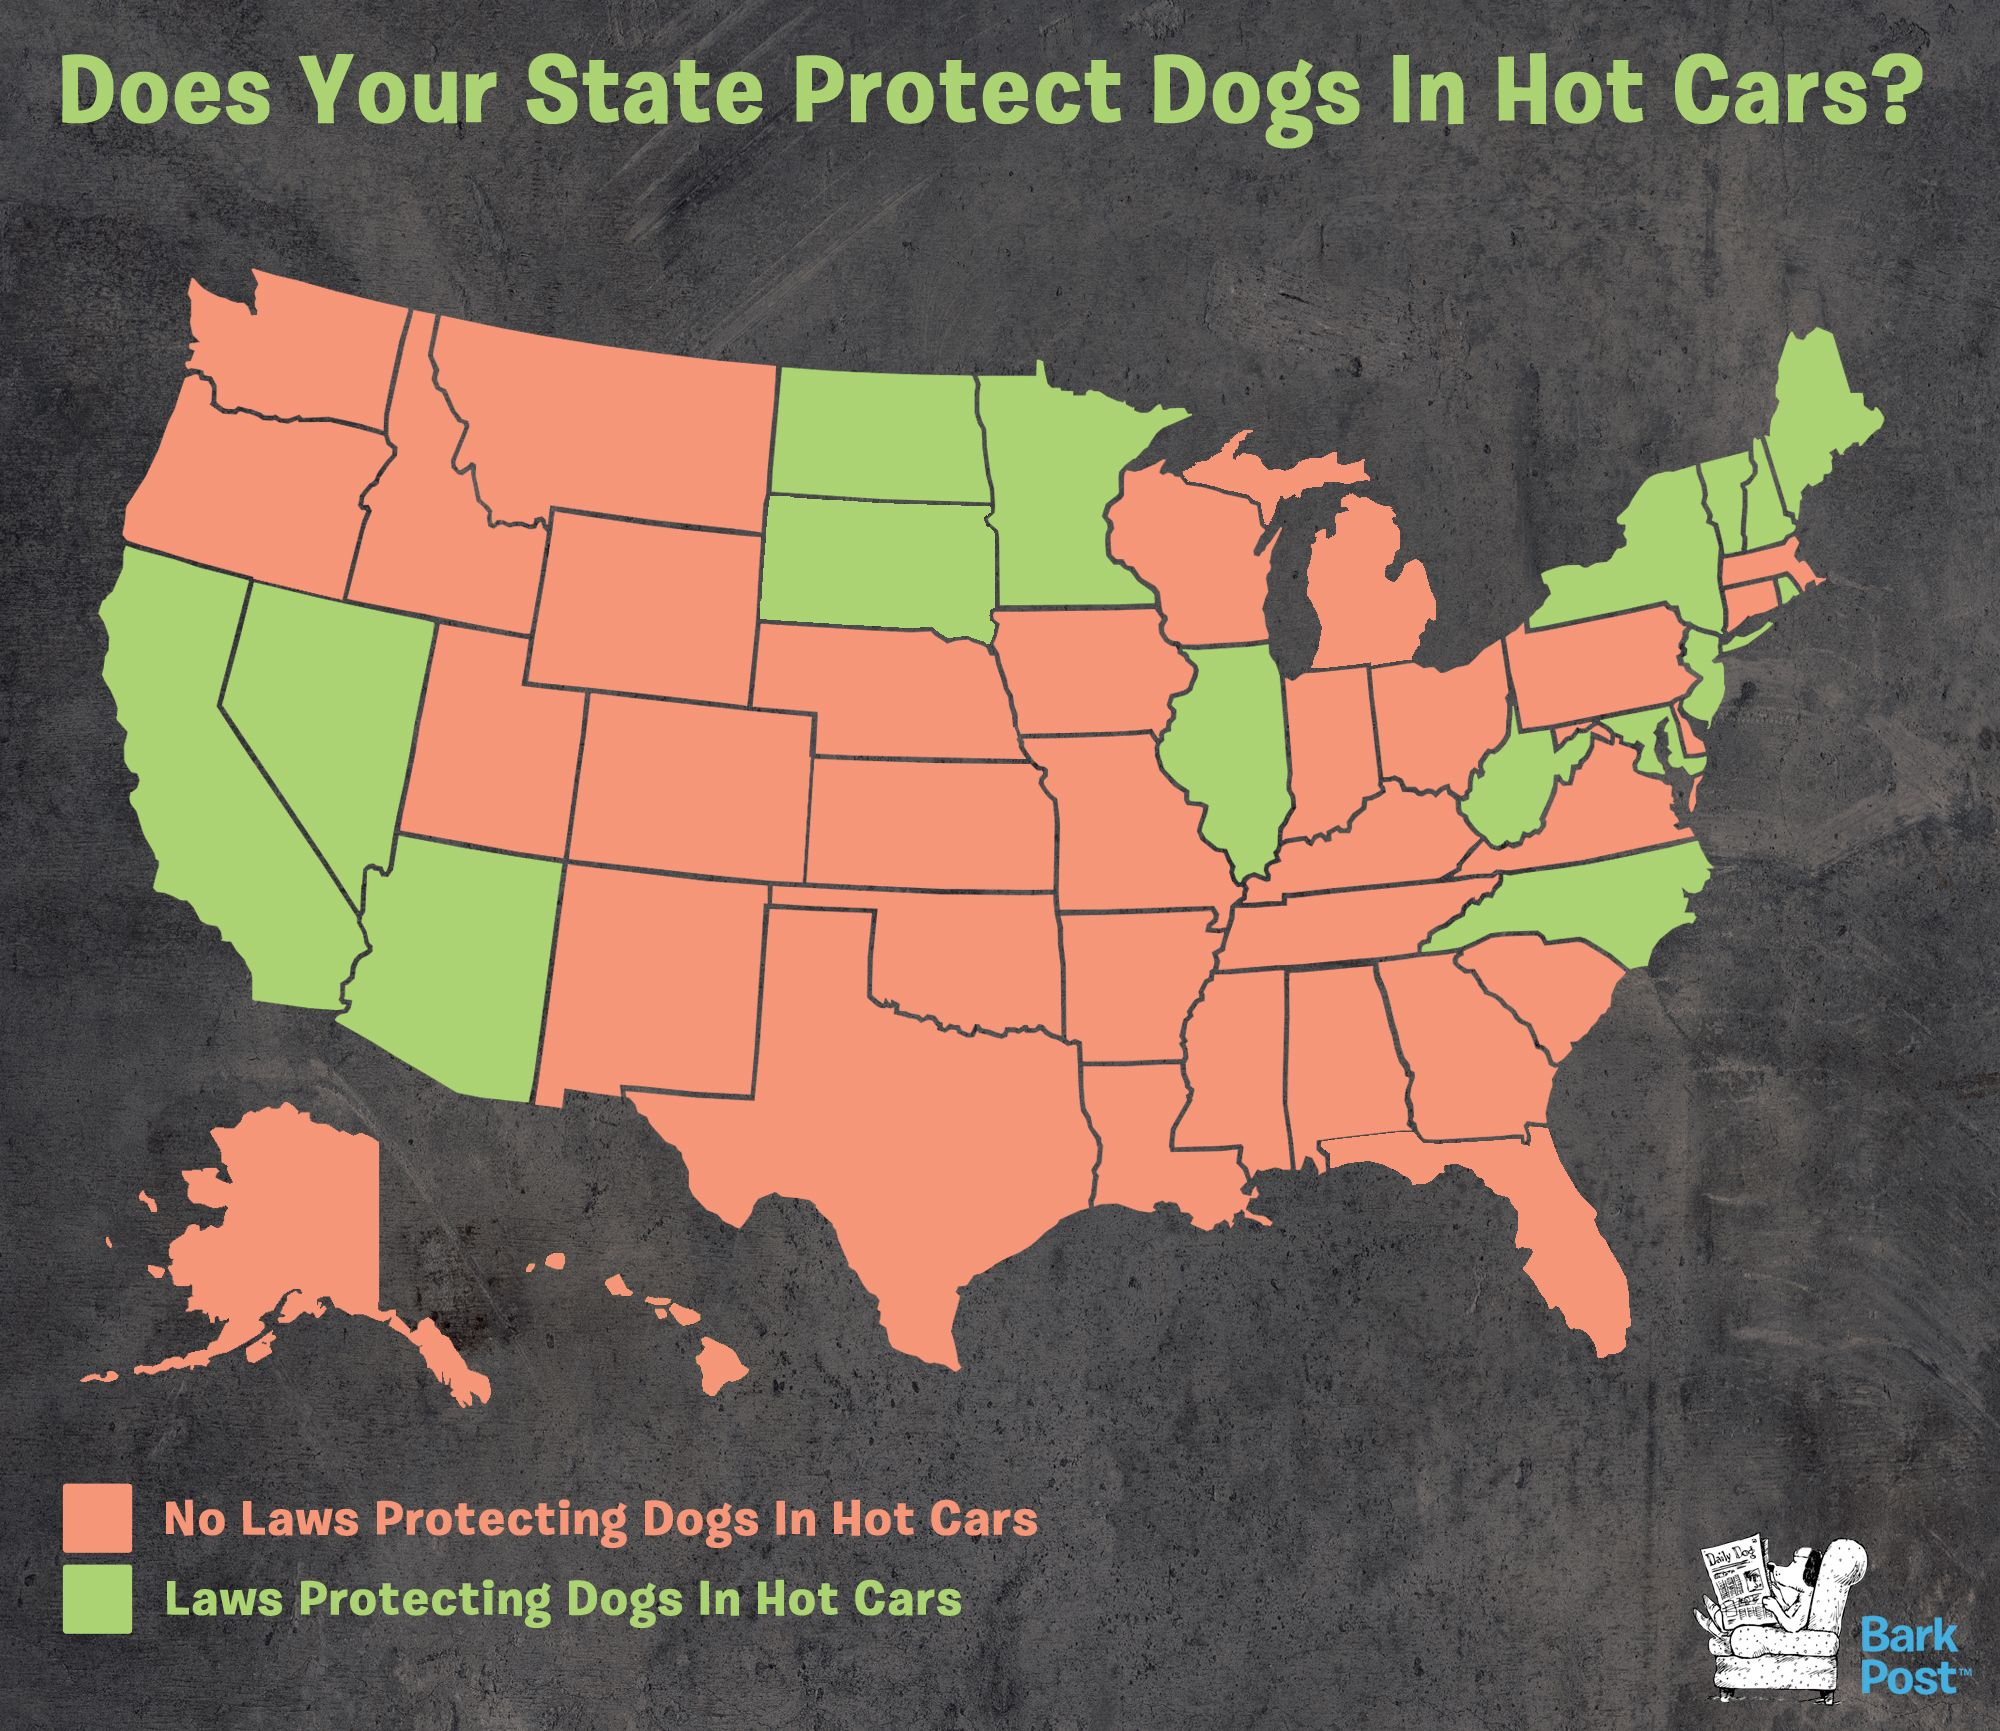 16 States With Laws To Protect Dogs In Hot Cars Hot Cars Dogs